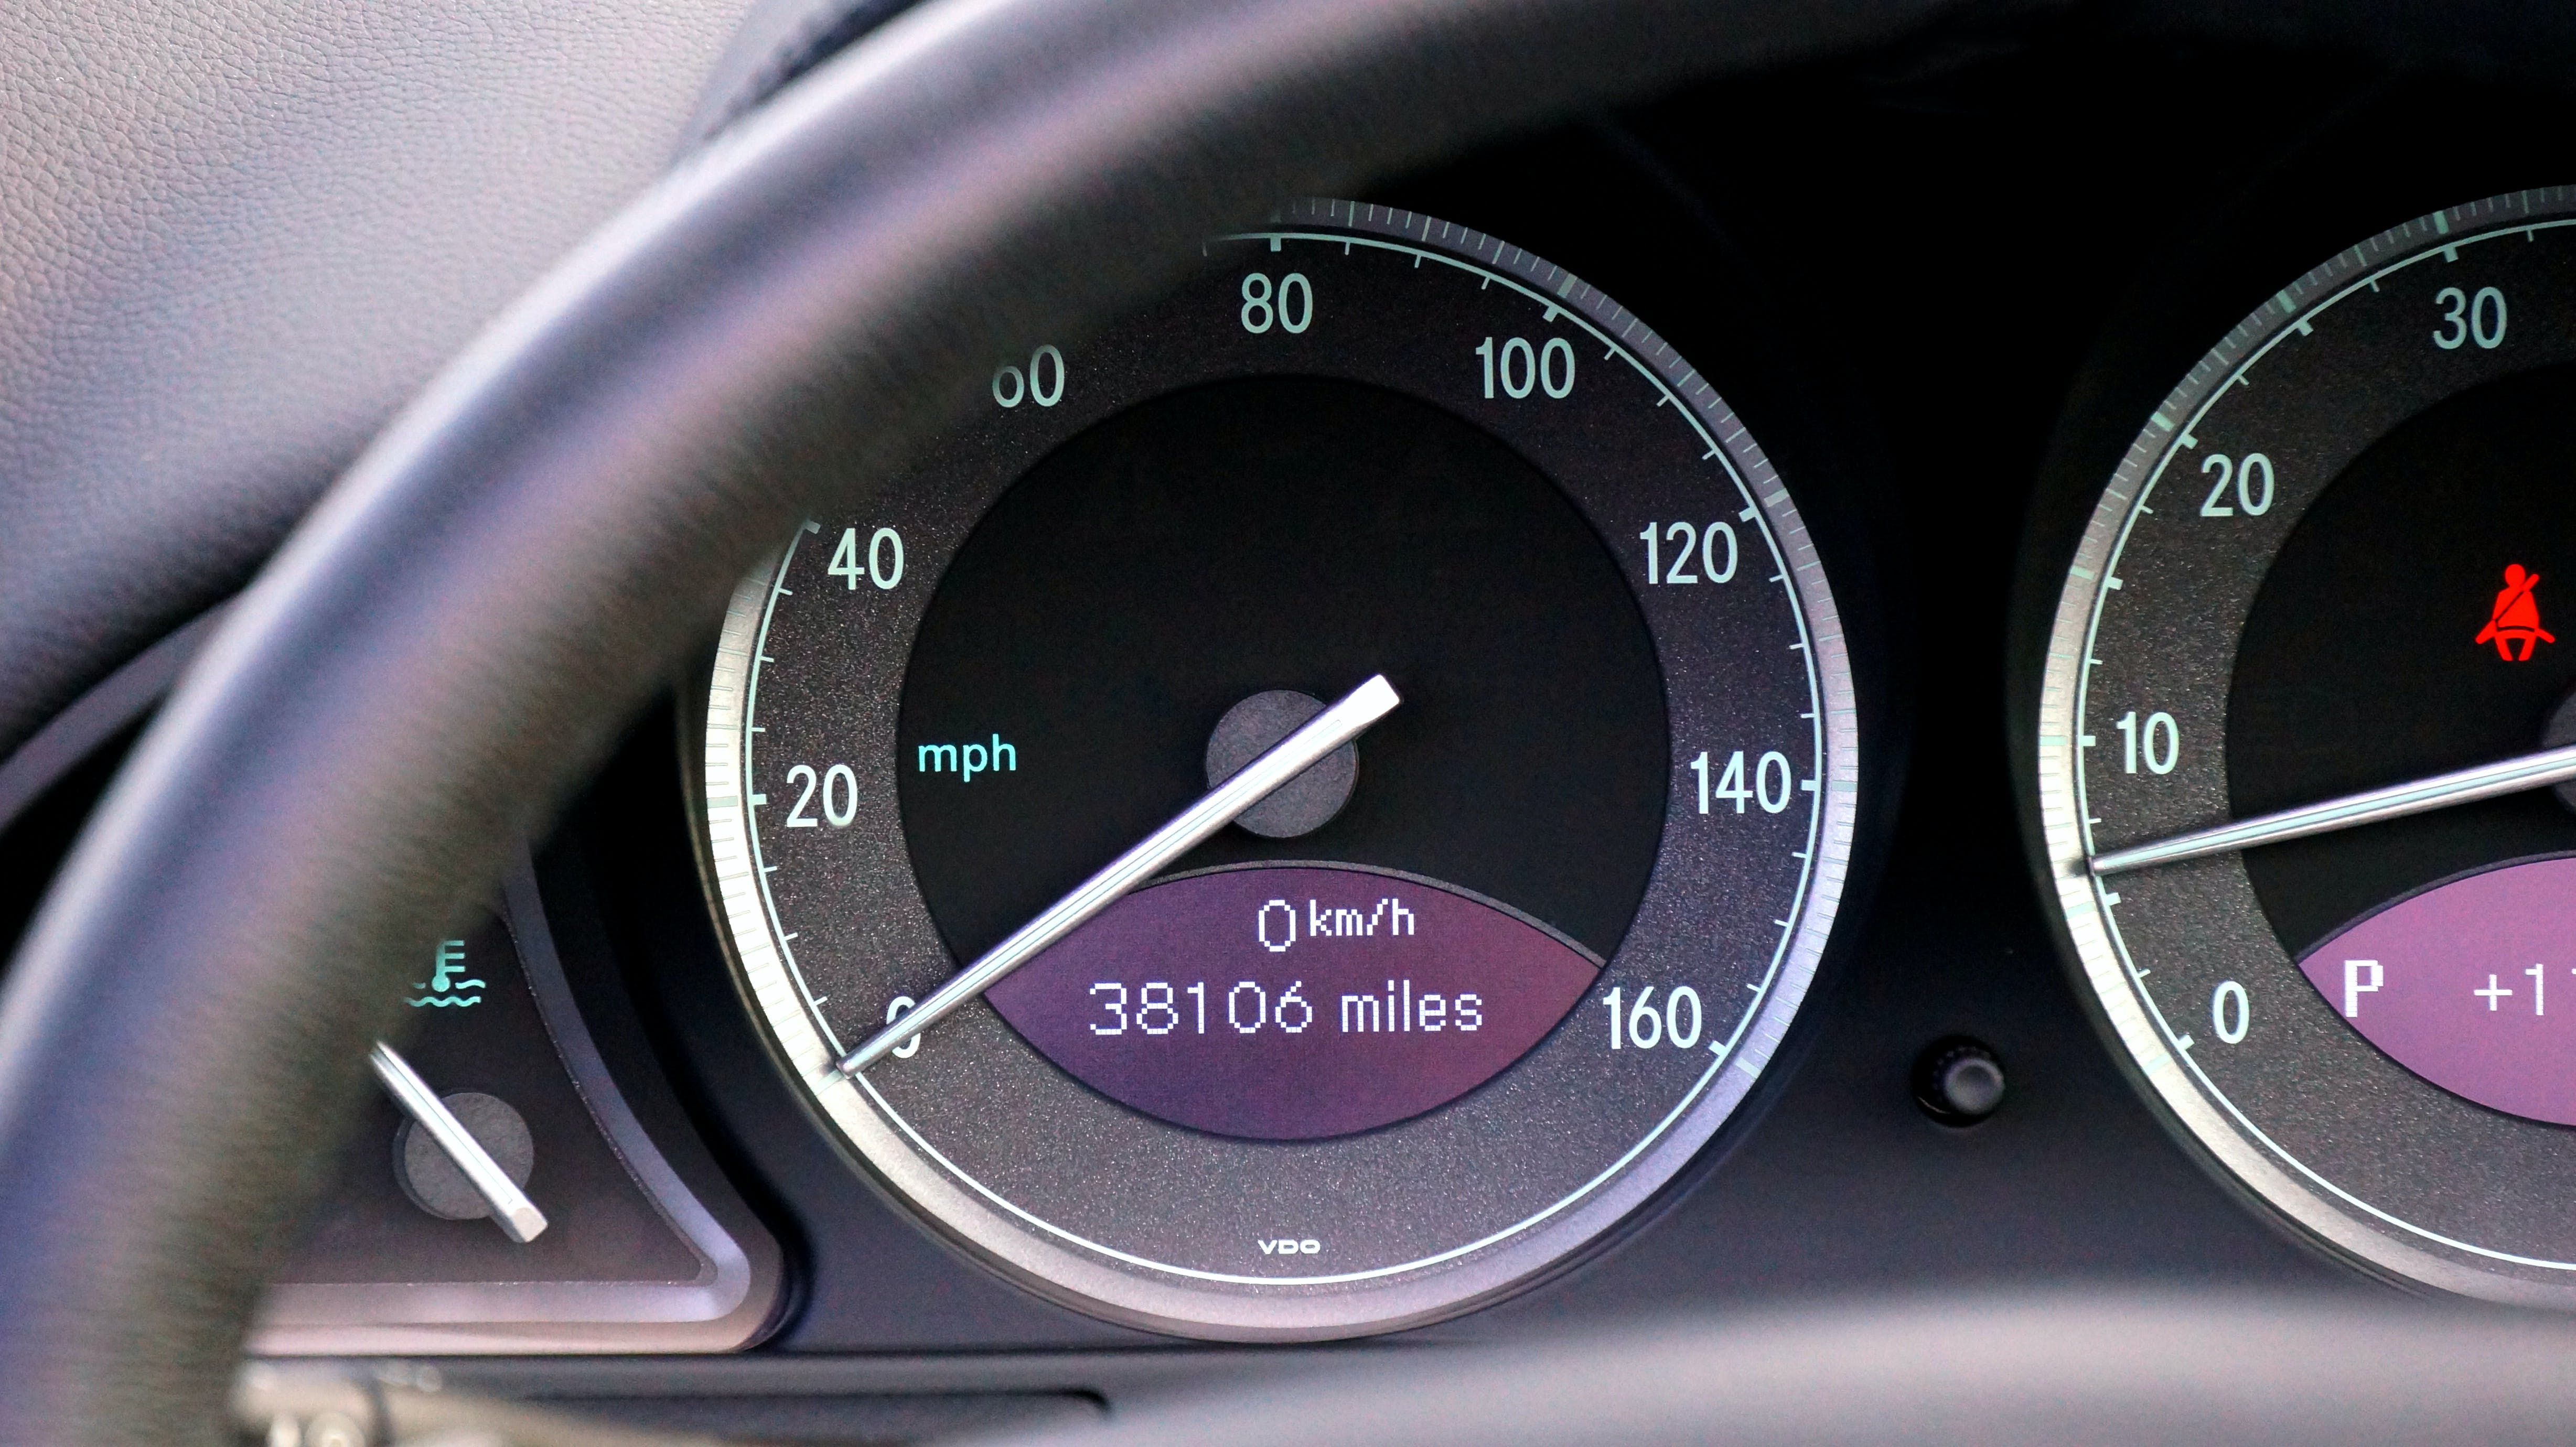 Black Analog Car Speedometer